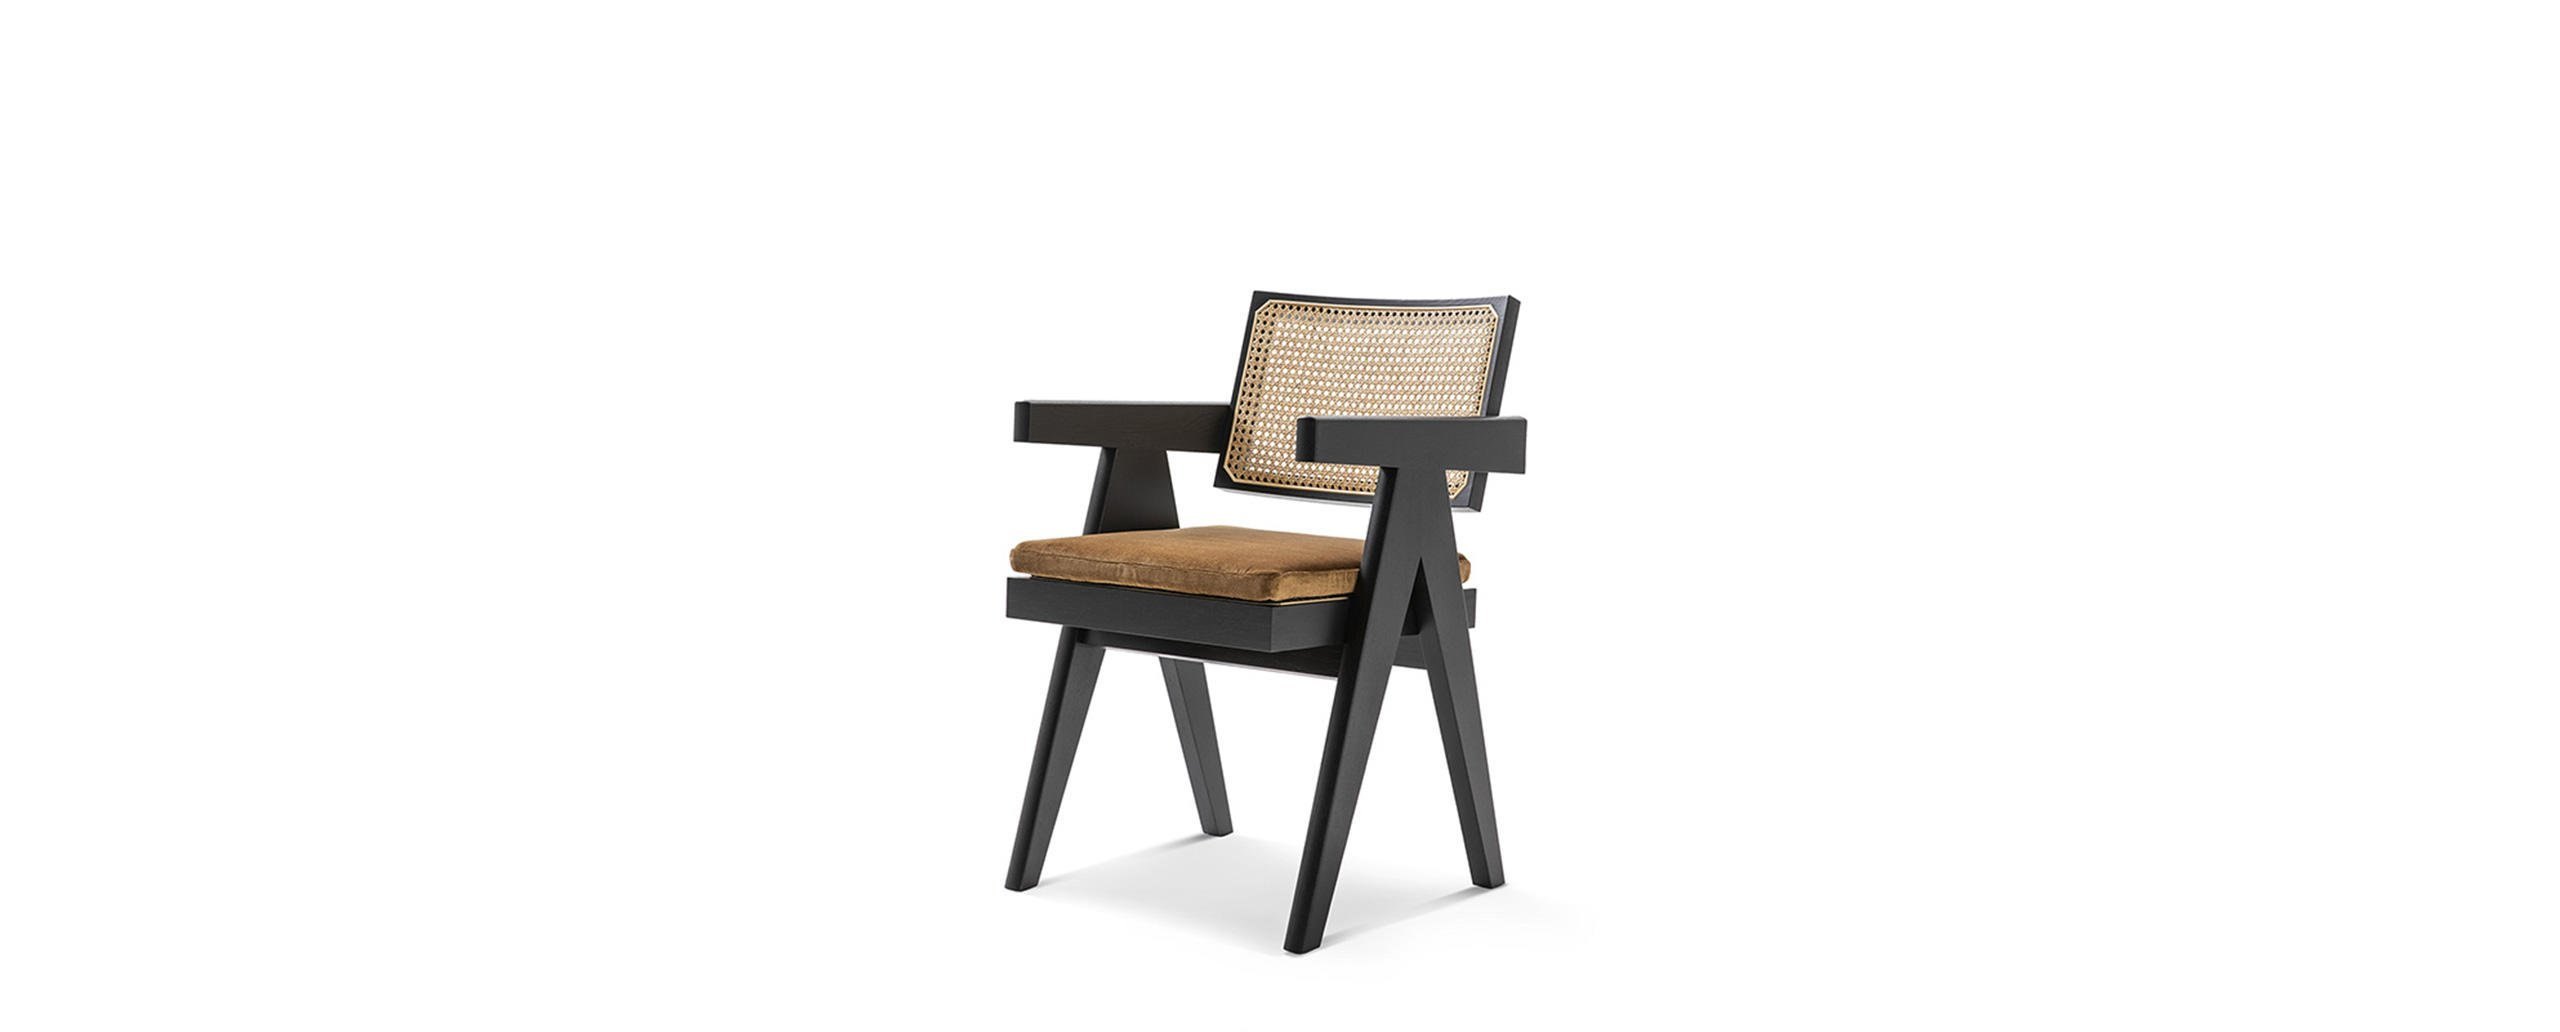 1_cassina_capitol_complex_office_chair_hommage_o_pierre_jeanneret_cassina_rd